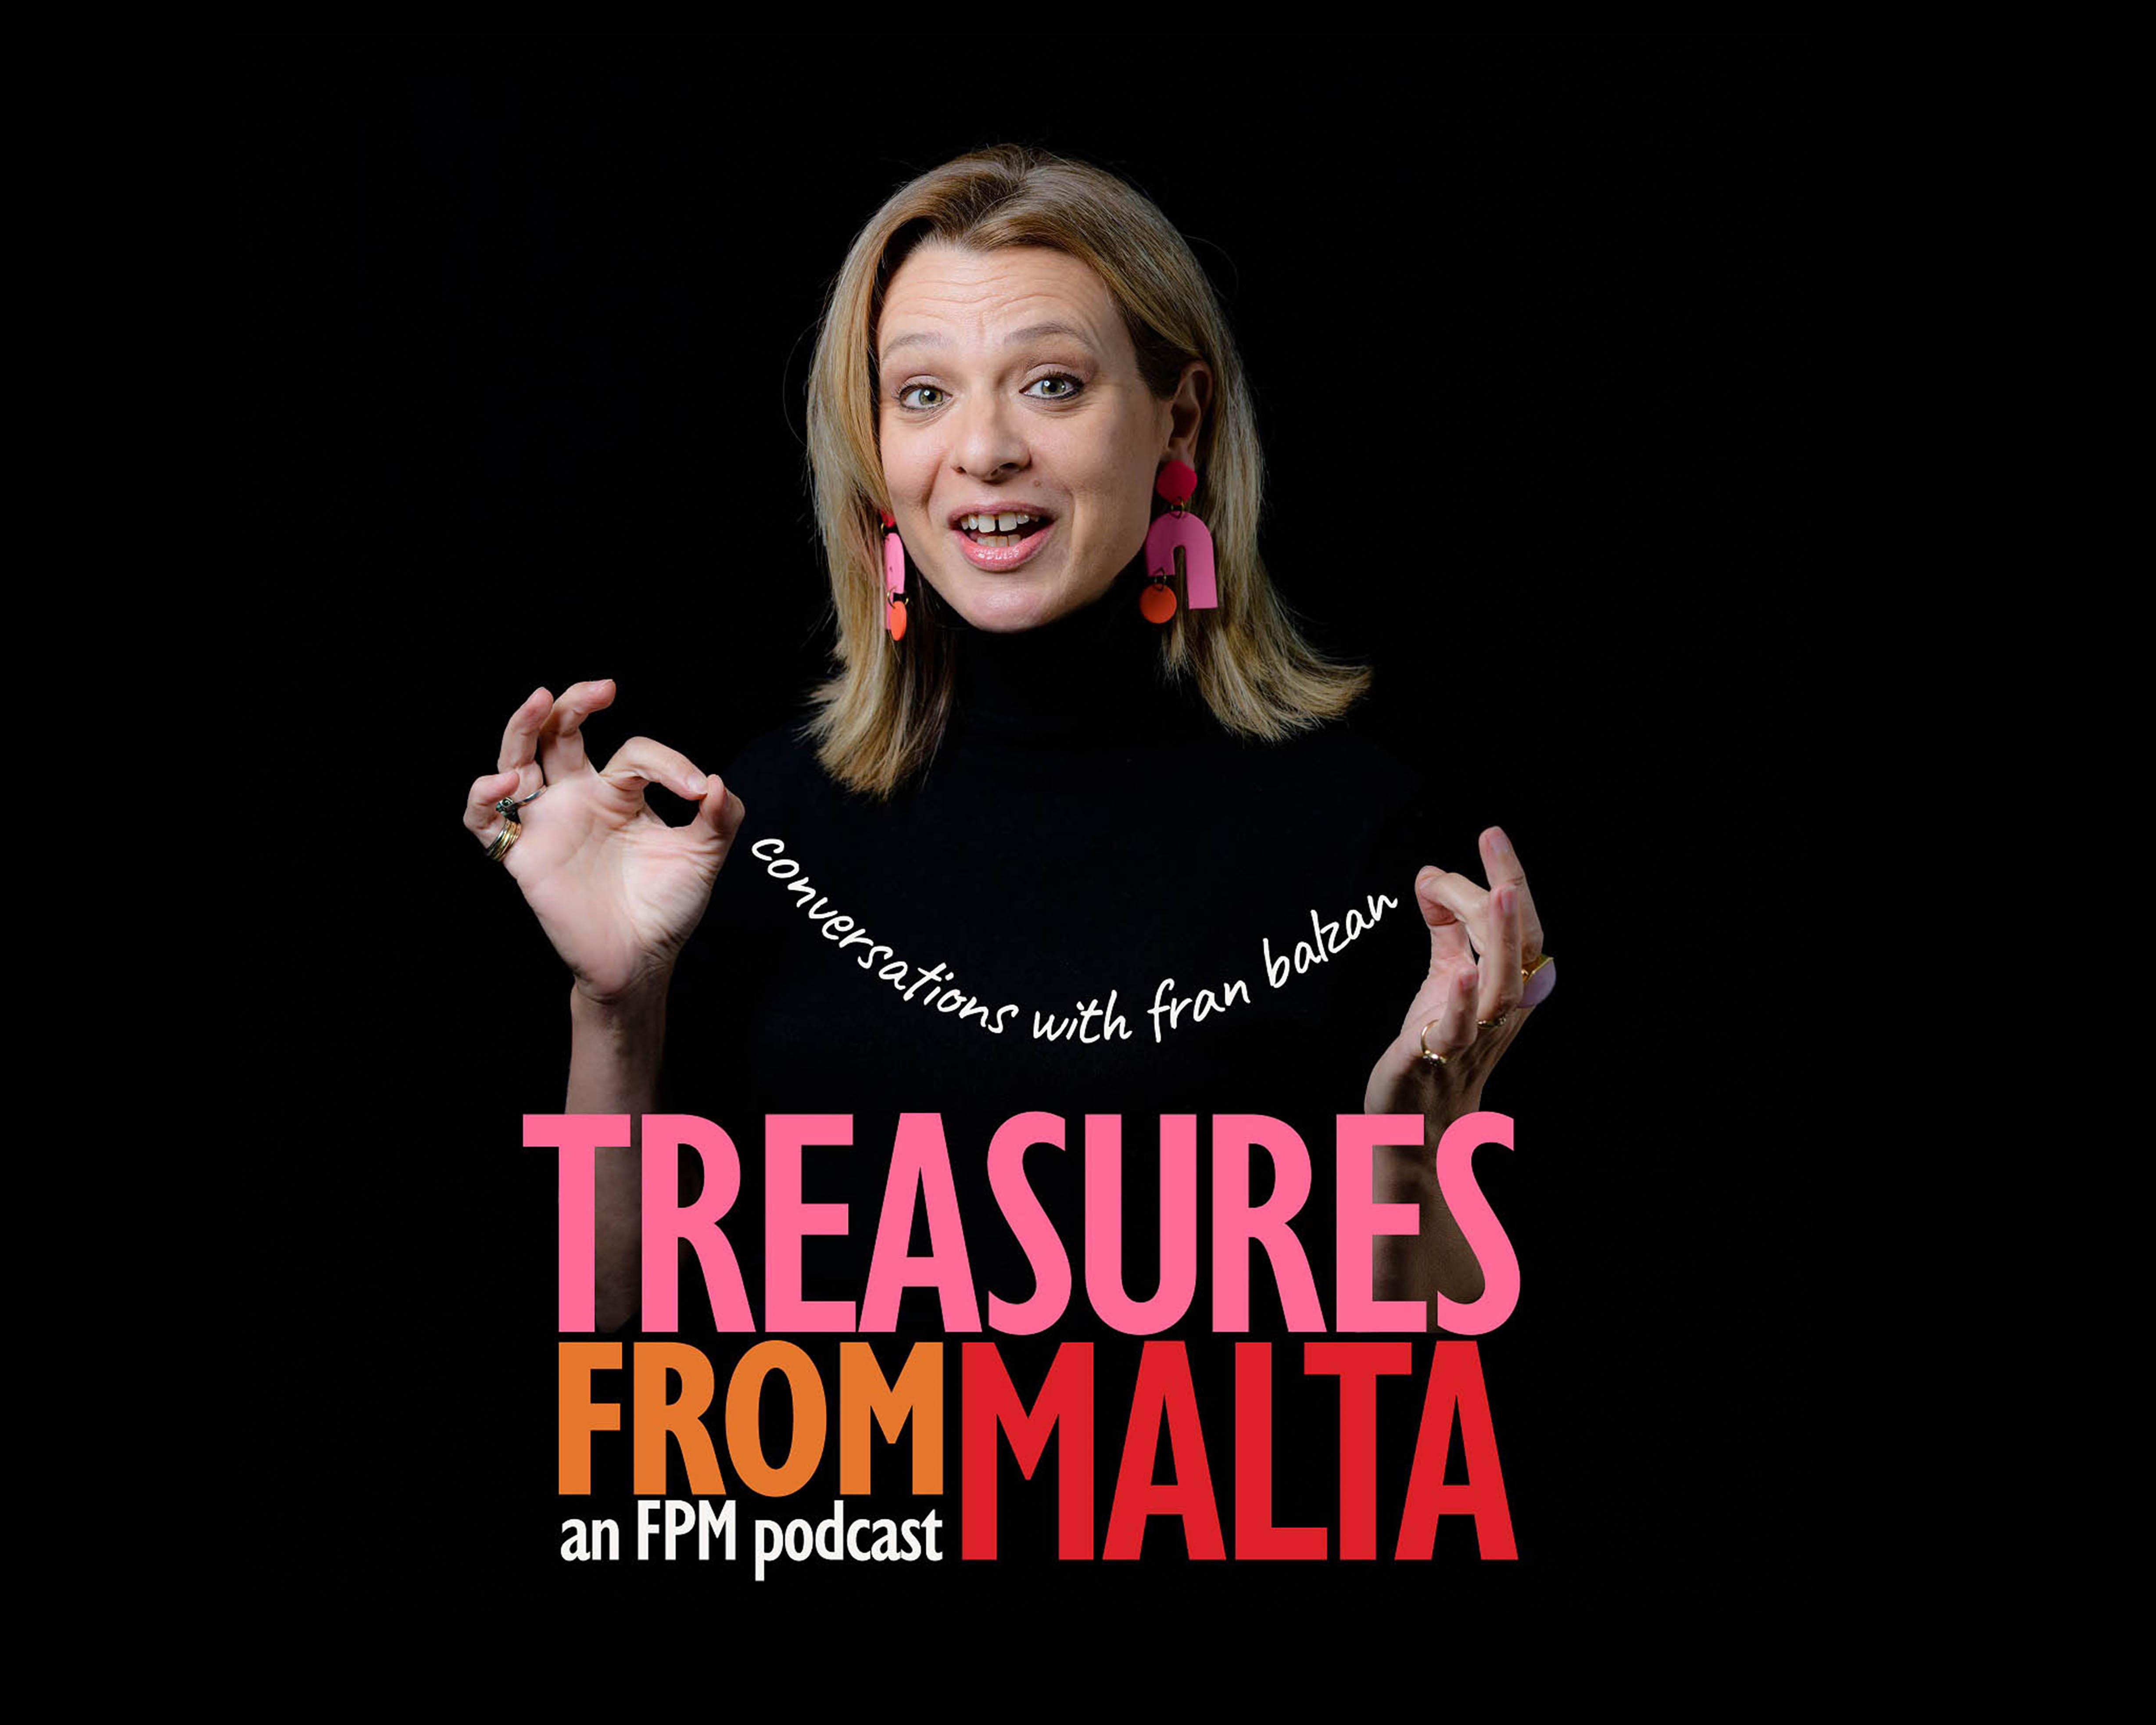 Treasures from Malta: An FPM Podcast